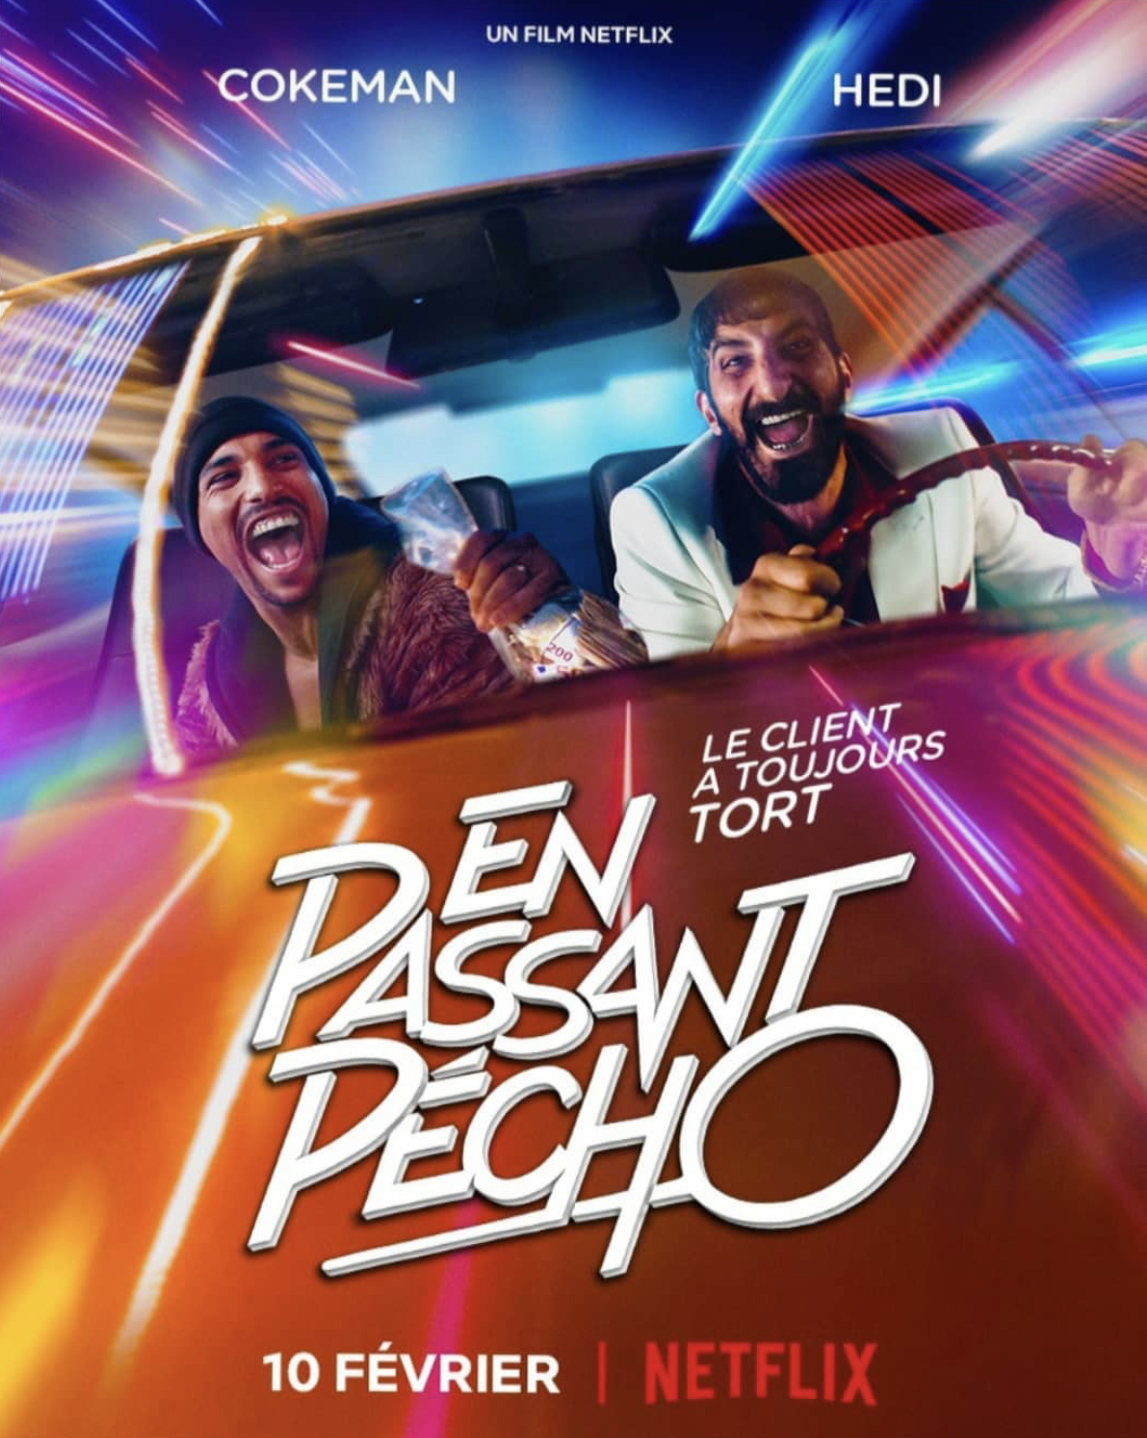 En Passant Pécho streaming